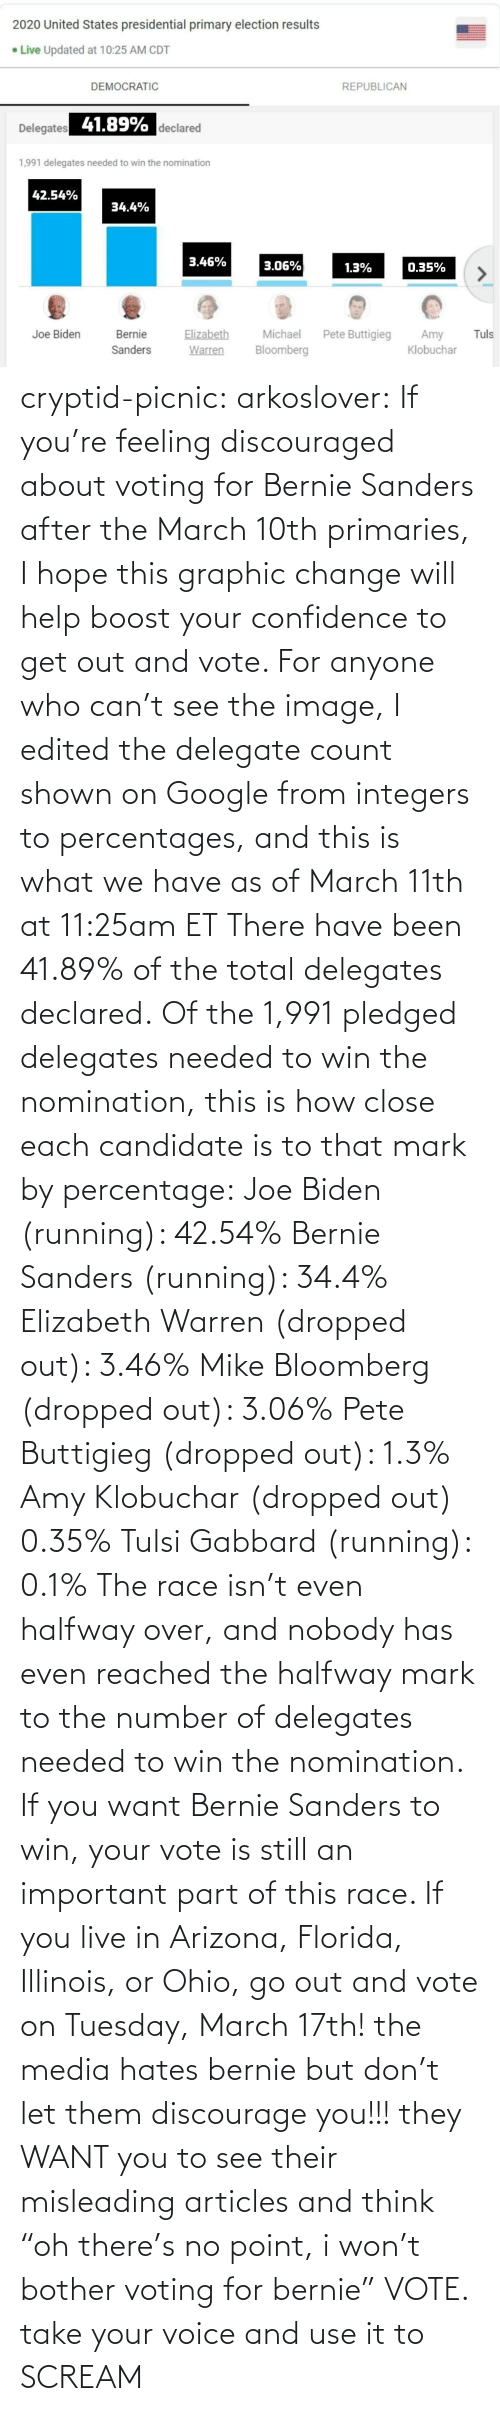 "If Youre: cryptid-picnic: arkoslover:   If you're feeling discouraged about voting for Bernie Sanders after the March 10th primaries, I hope this graphic change will help boost your confidence to get out and vote. For anyone who can't see the image, I edited the delegate count shown on Google from integers to percentages, and this is what we have as of March 11th at 11:25am ET There have been 41.89% of the total delegates declared. Of the 1,991 pledged delegates needed to win the nomination, this is how close each candidate is to that mark by percentage: Joe Biden (running): 42.54% Bernie Sanders (running): 34.4% Elizabeth Warren (dropped out): 3.46% Mike Bloomberg (dropped out): 3.06% Pete Buttigieg (dropped out): 1.3% Amy Klobuchar (dropped out) 0.35% Tulsi Gabbard (running): 0.1% The race isn't even halfway over, and nobody has even reached the halfway mark to the number of delegates needed to win the nomination. If you want Bernie Sanders to win, your vote is still an important part of this race. If you live in Arizona, Florida, Illinois, or Ohio, go out and vote on Tuesday, March 17th!    the media hates bernie but don't let them discourage you!!! they WANT you to see their misleading articles and think ""oh there's no point, i won't bother voting for bernie"" VOTE. take your voice and use it to SCREAM"